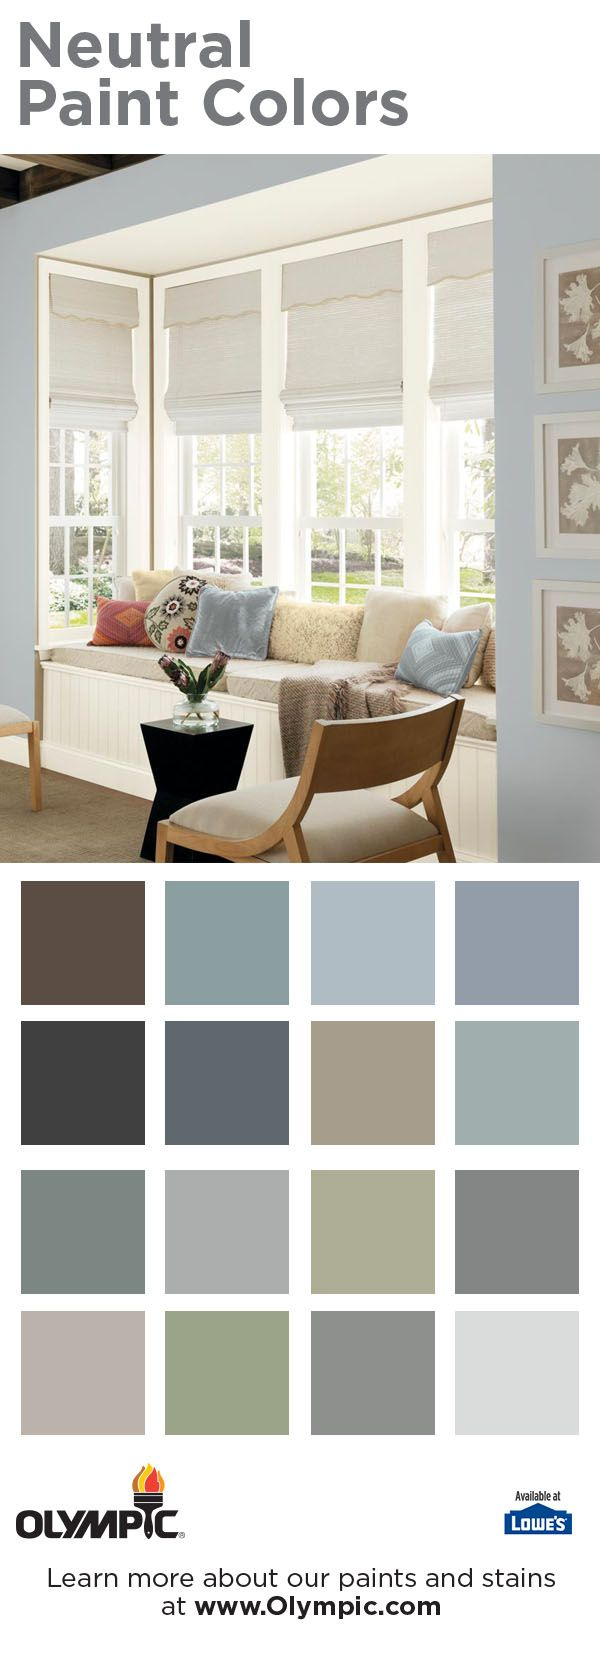 17 Best Images About Neutral Paint Colors On Pinterest